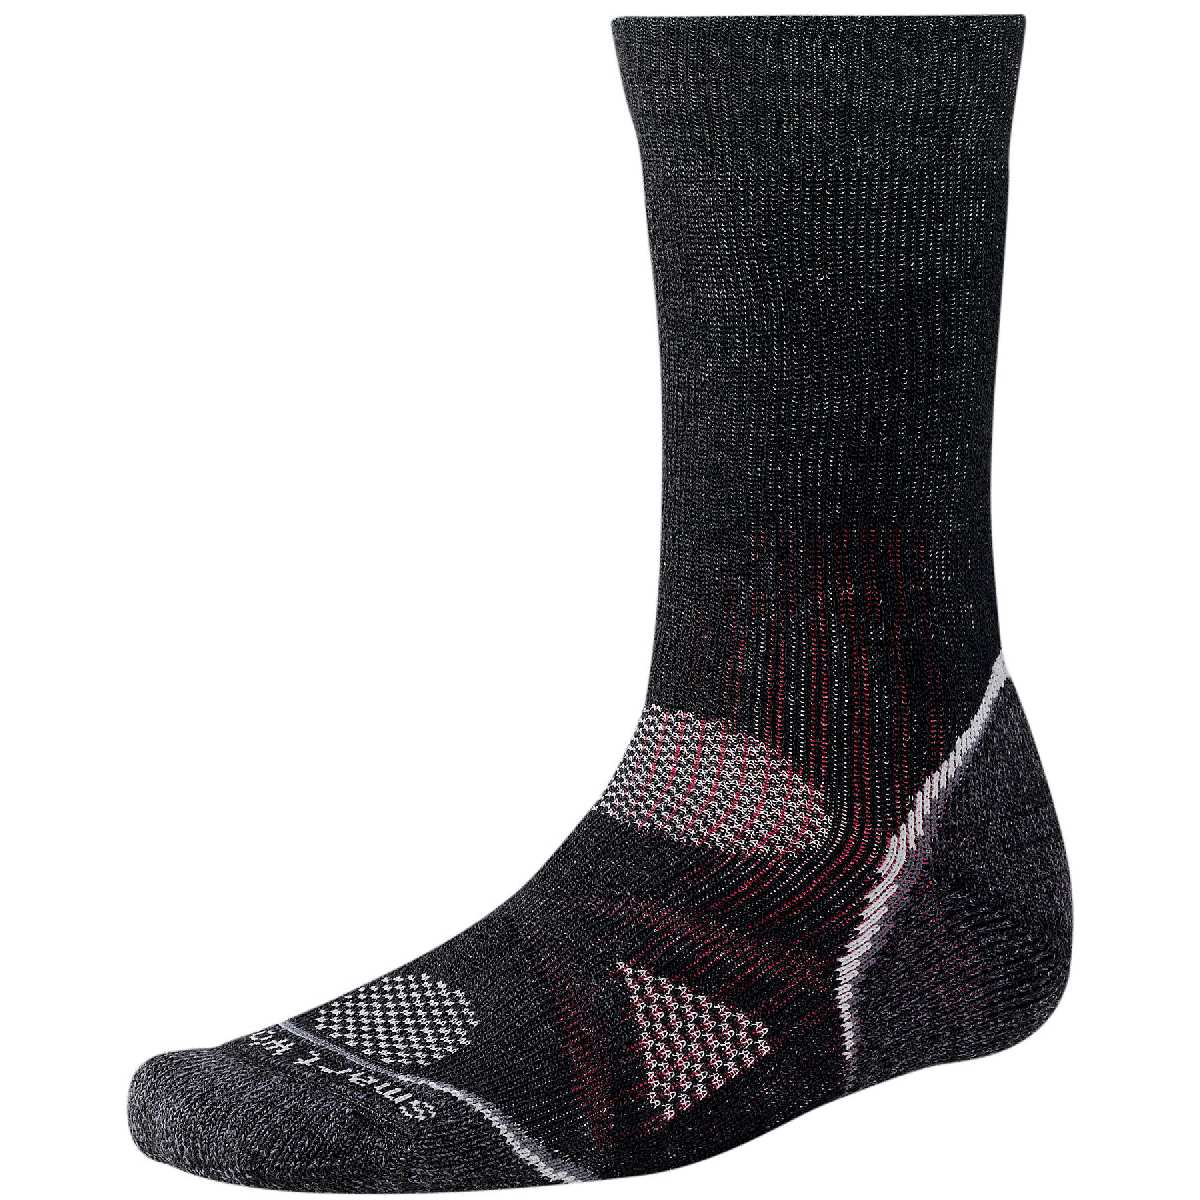 SmartWool PhD Outdoor Heavy Crew Hiking Sock Size XL Black U.S.A. & Canada